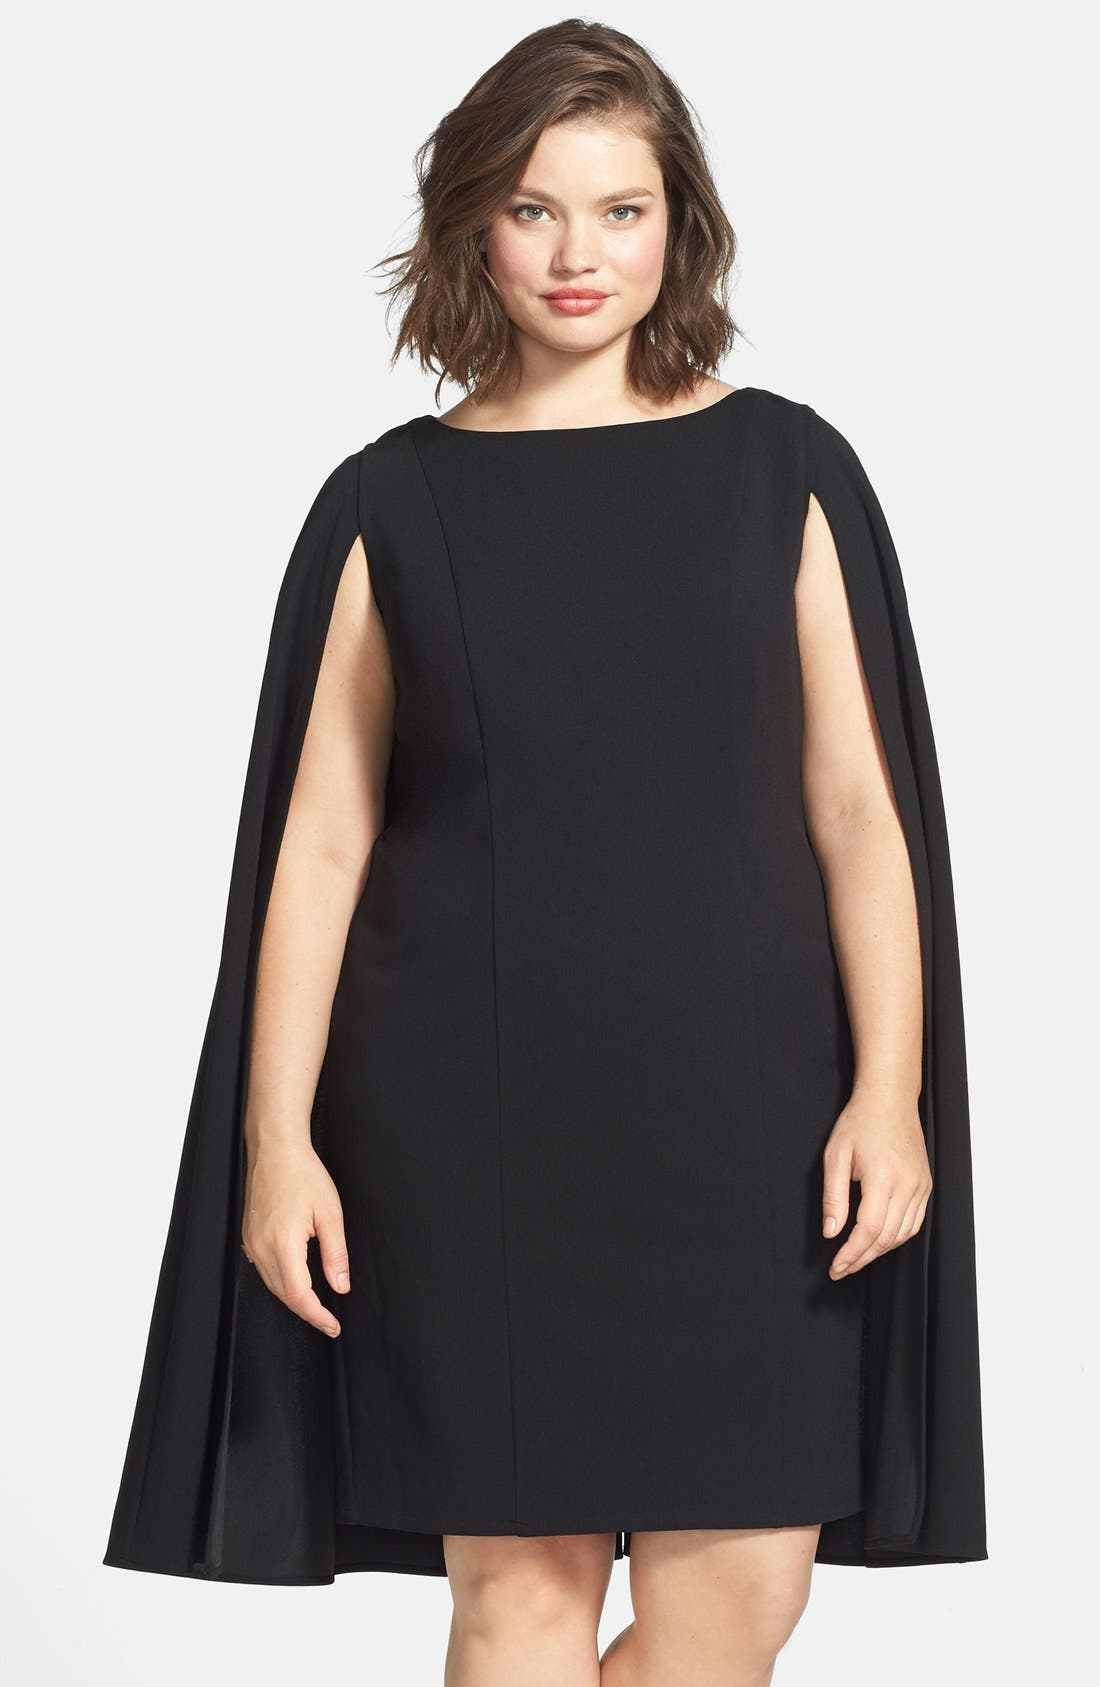 Adrianna Papell Cape Sheath Dress (Plus Size)